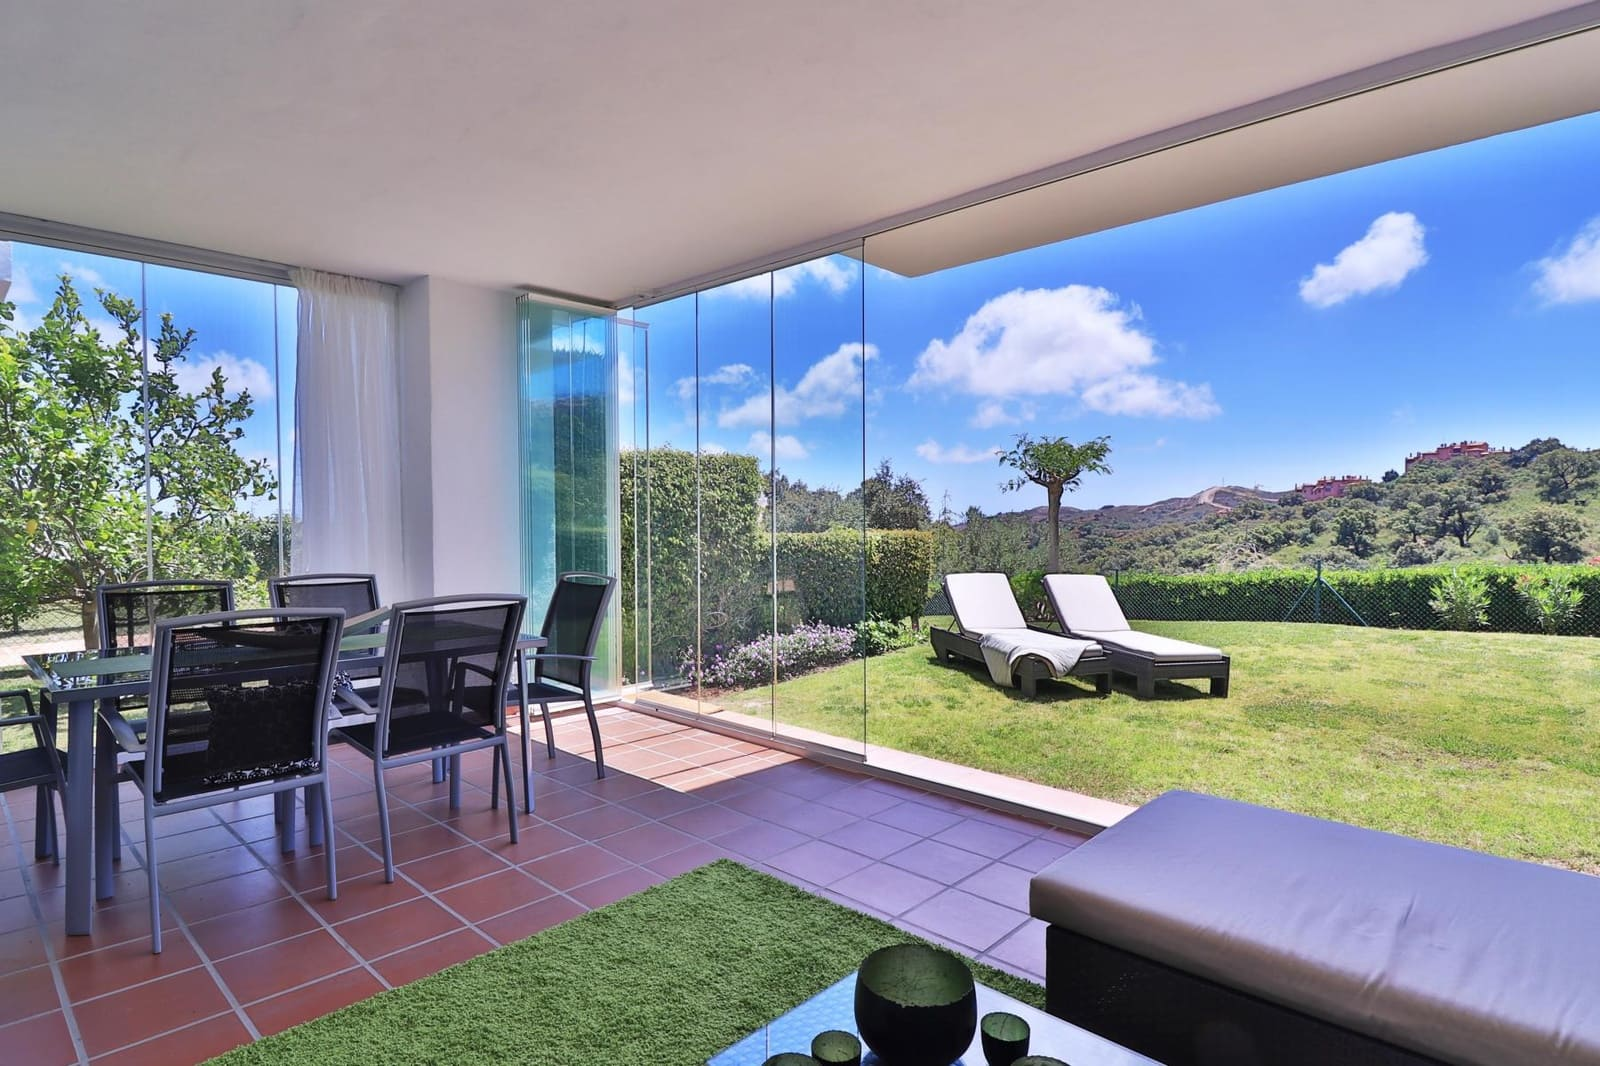 2 bedroom Apartment for sale in Marbella with pool garage - € 269,000 (Ref: 4595684)